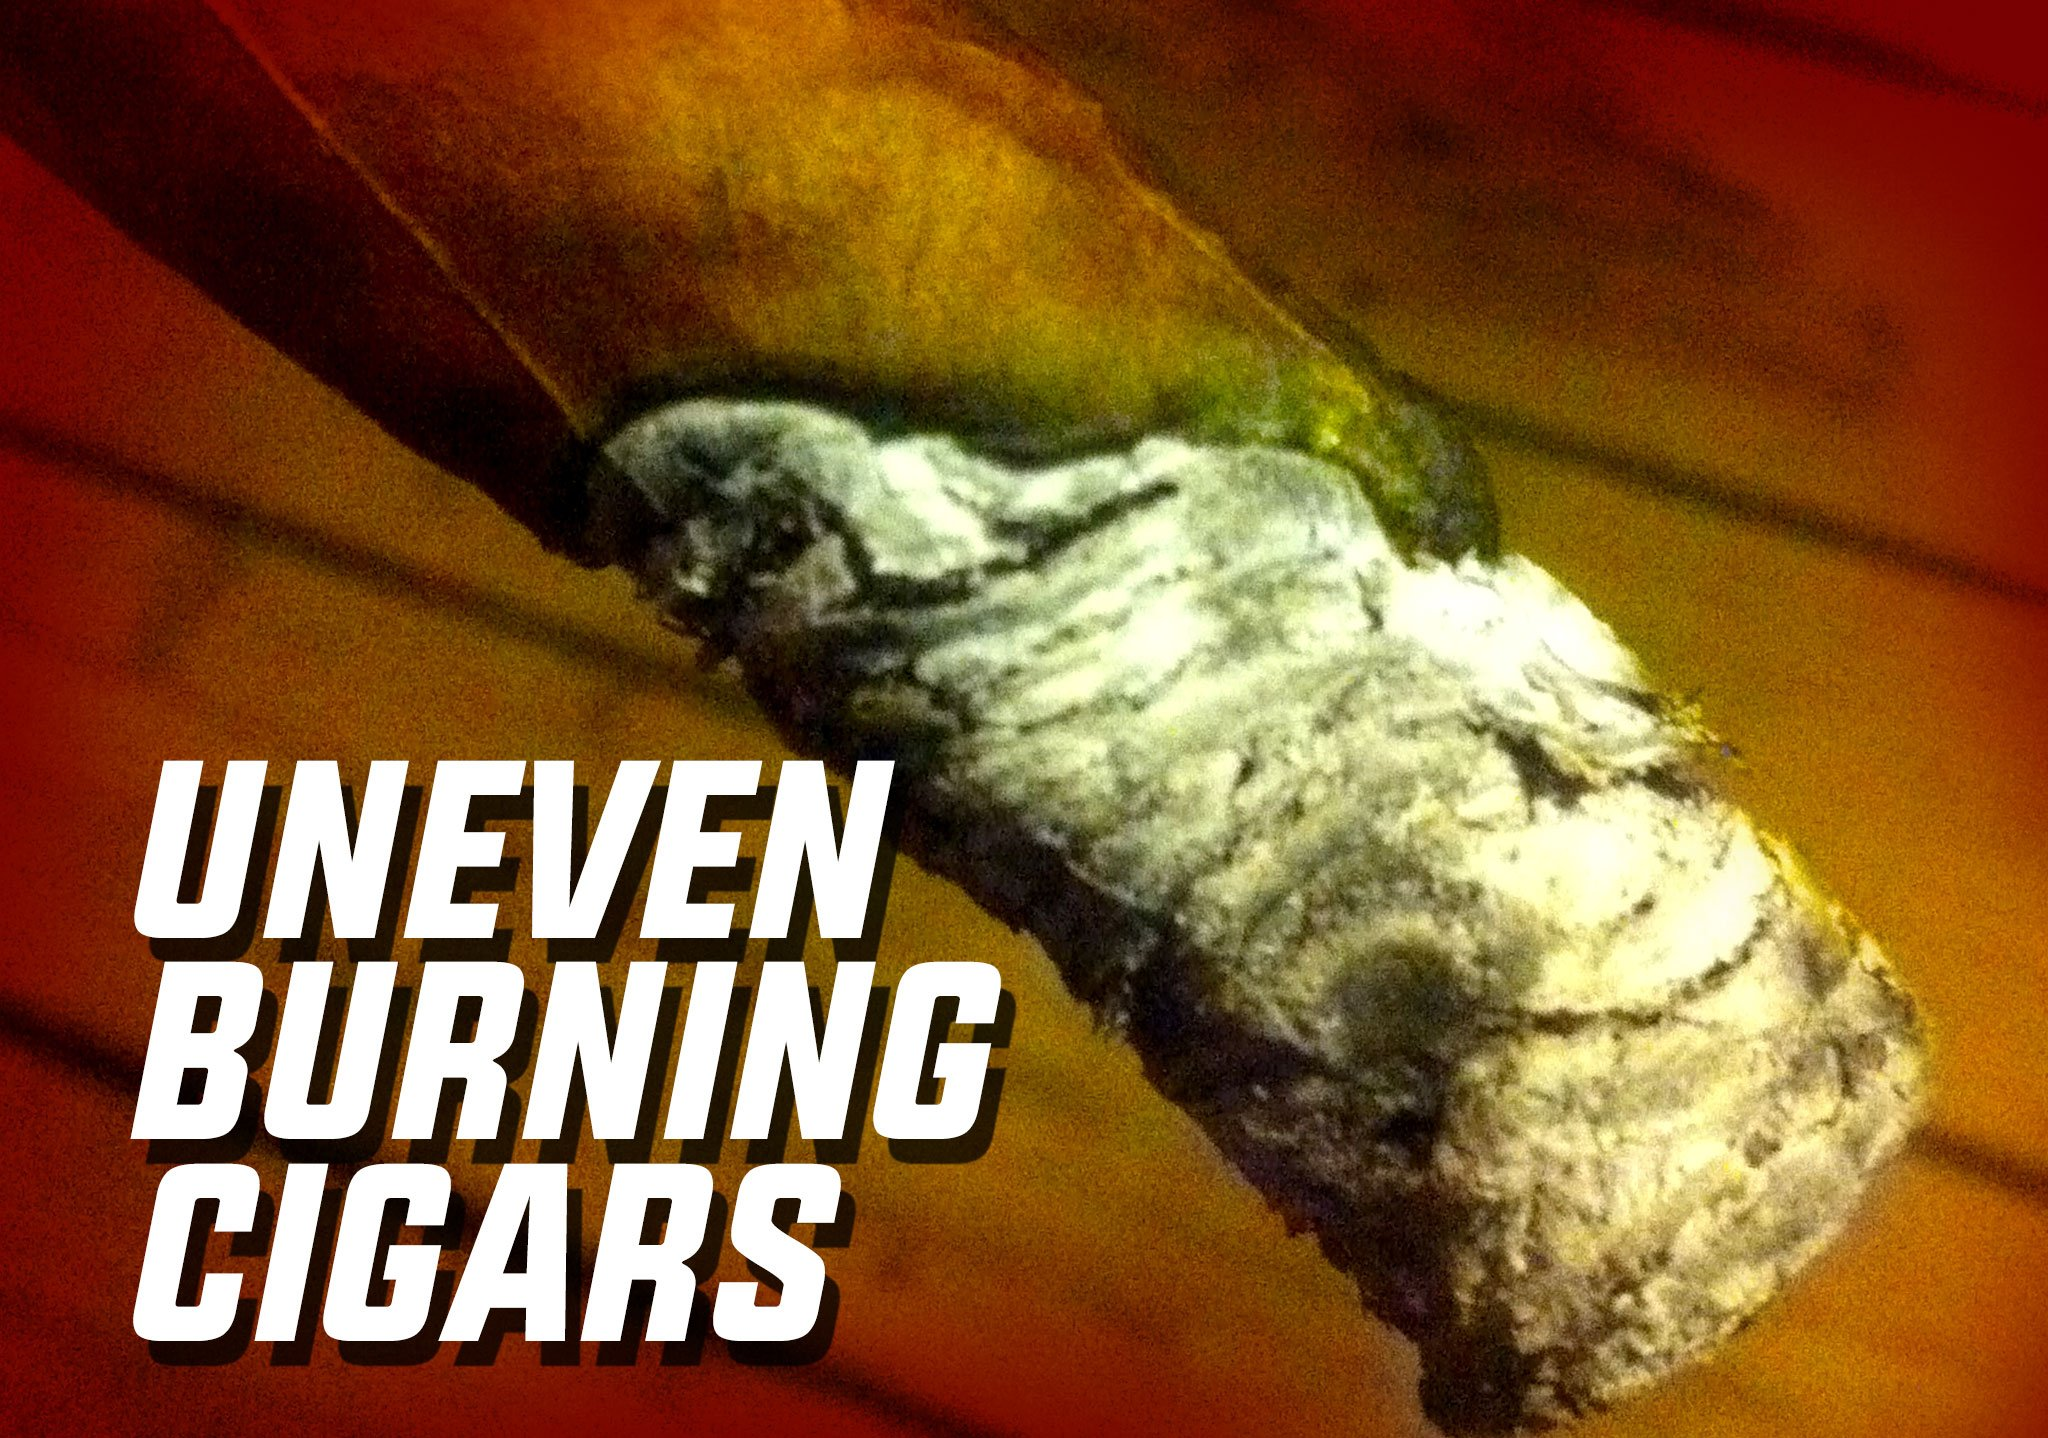 uneven burning cigars